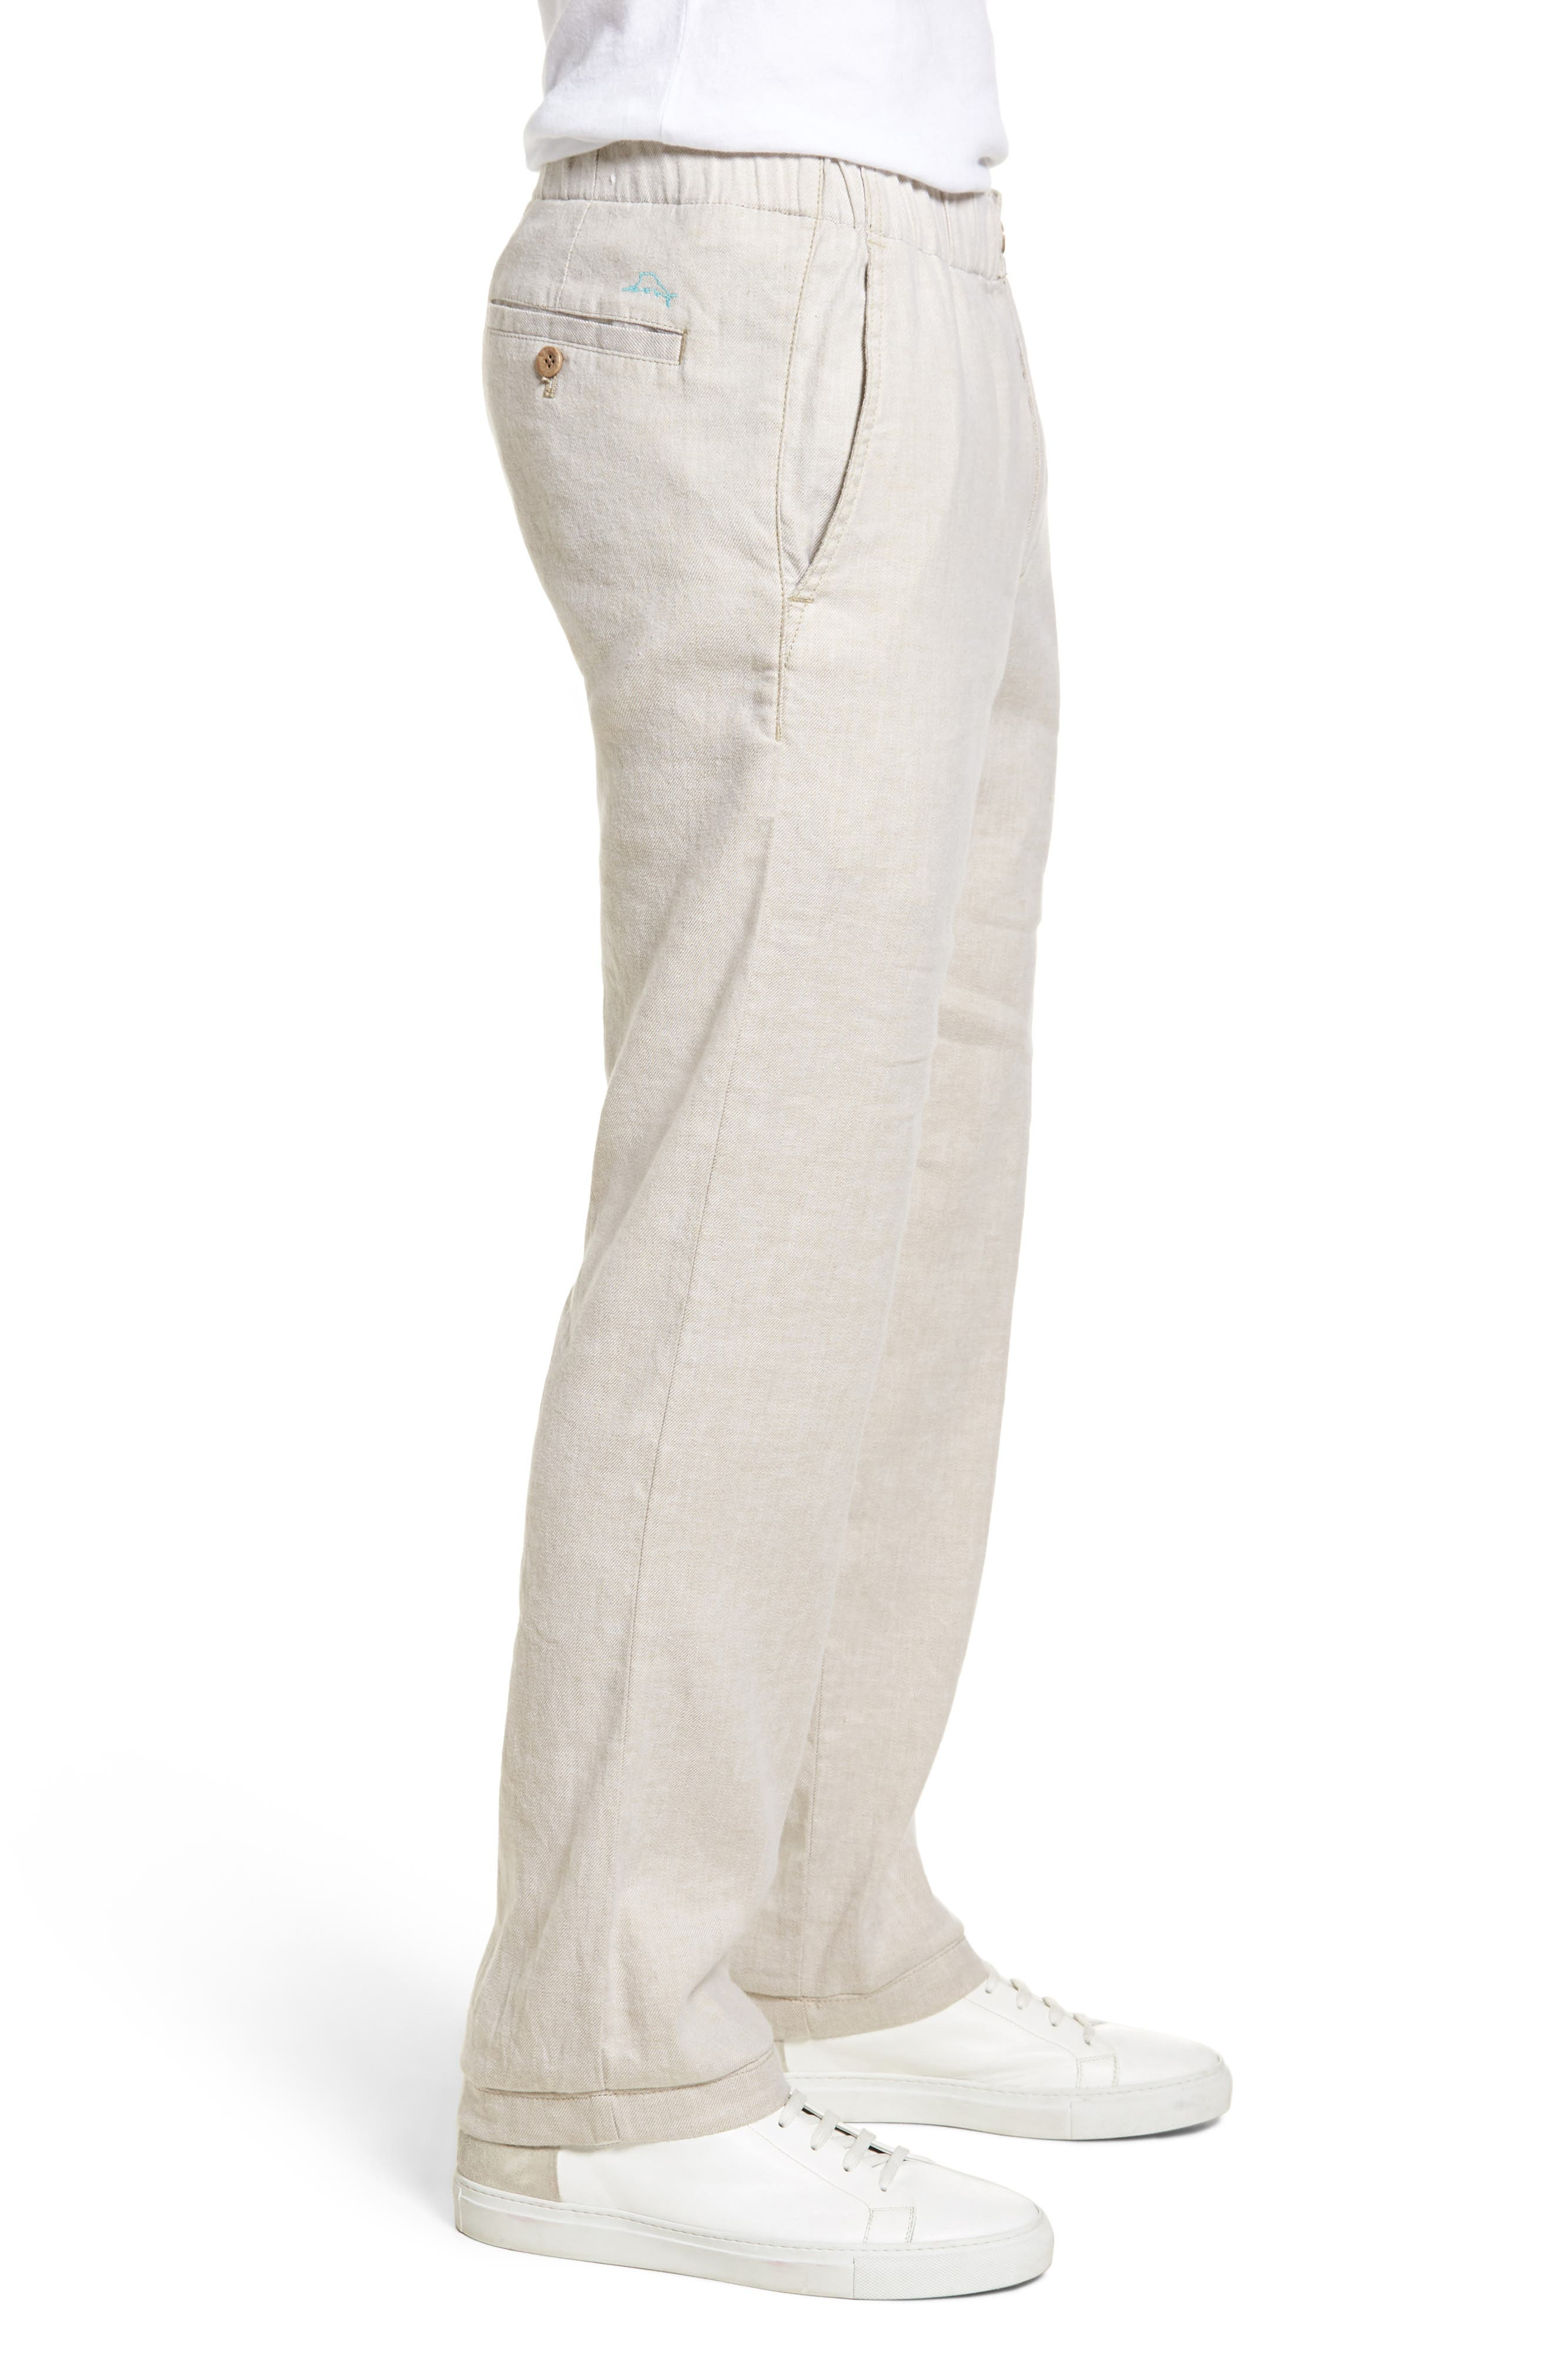 TOMMY BAHAMA,                             Beach Linen Blend Pants,                             Alternate thumbnail 3, color,                             STONE KHAKI